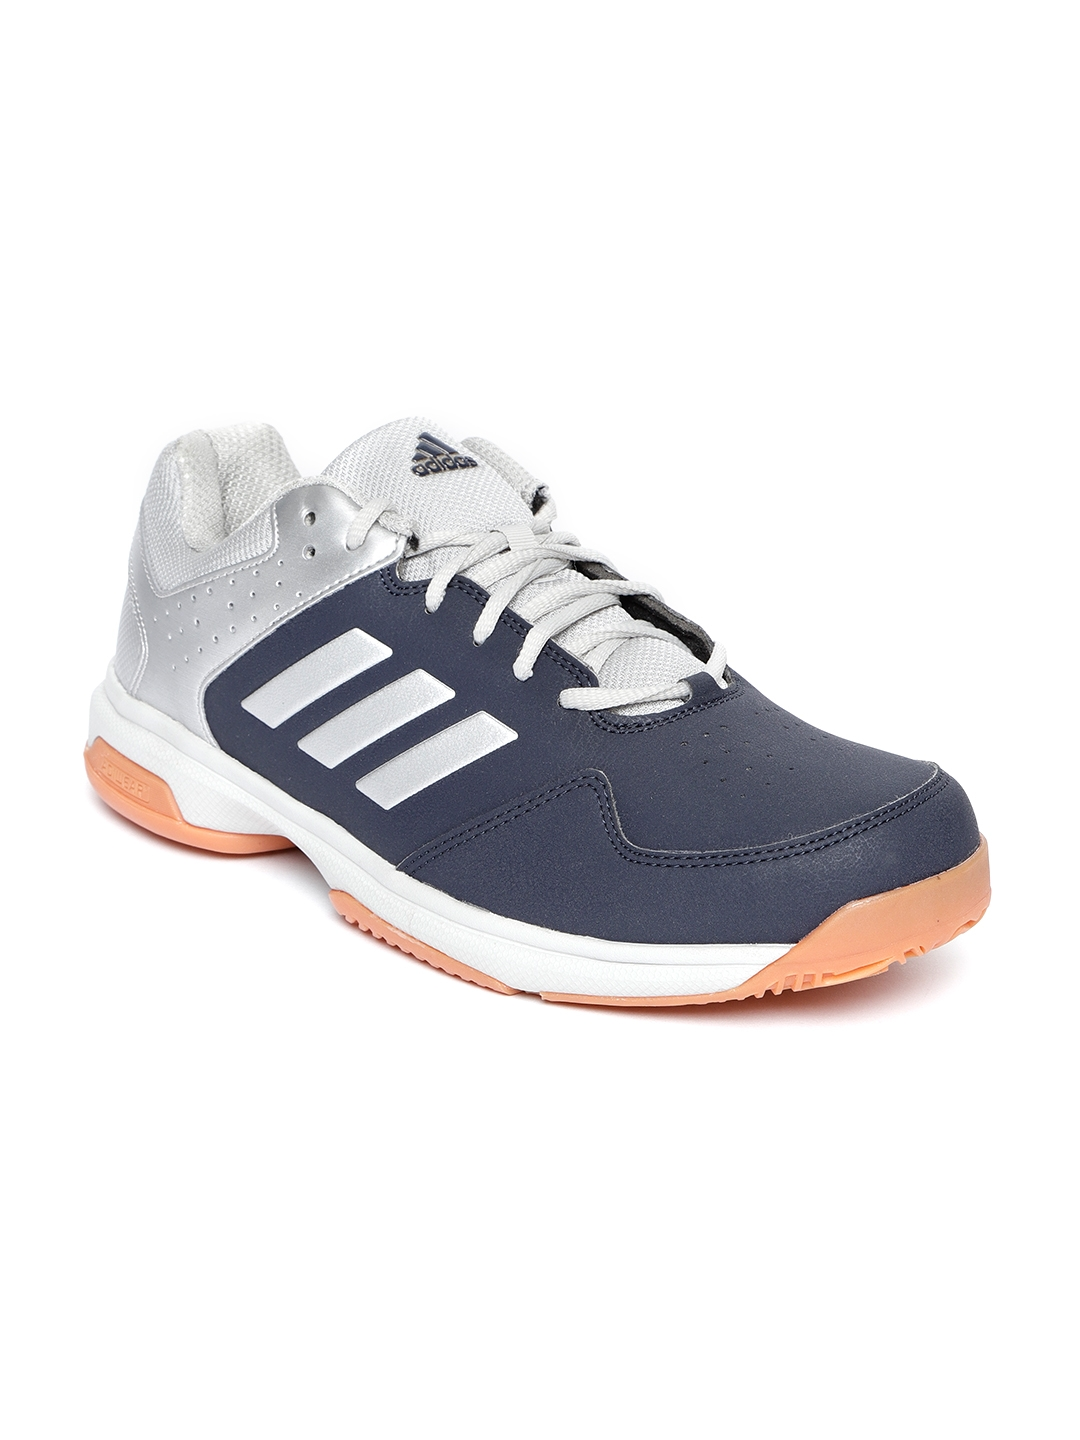 adidas badminton shoes for men